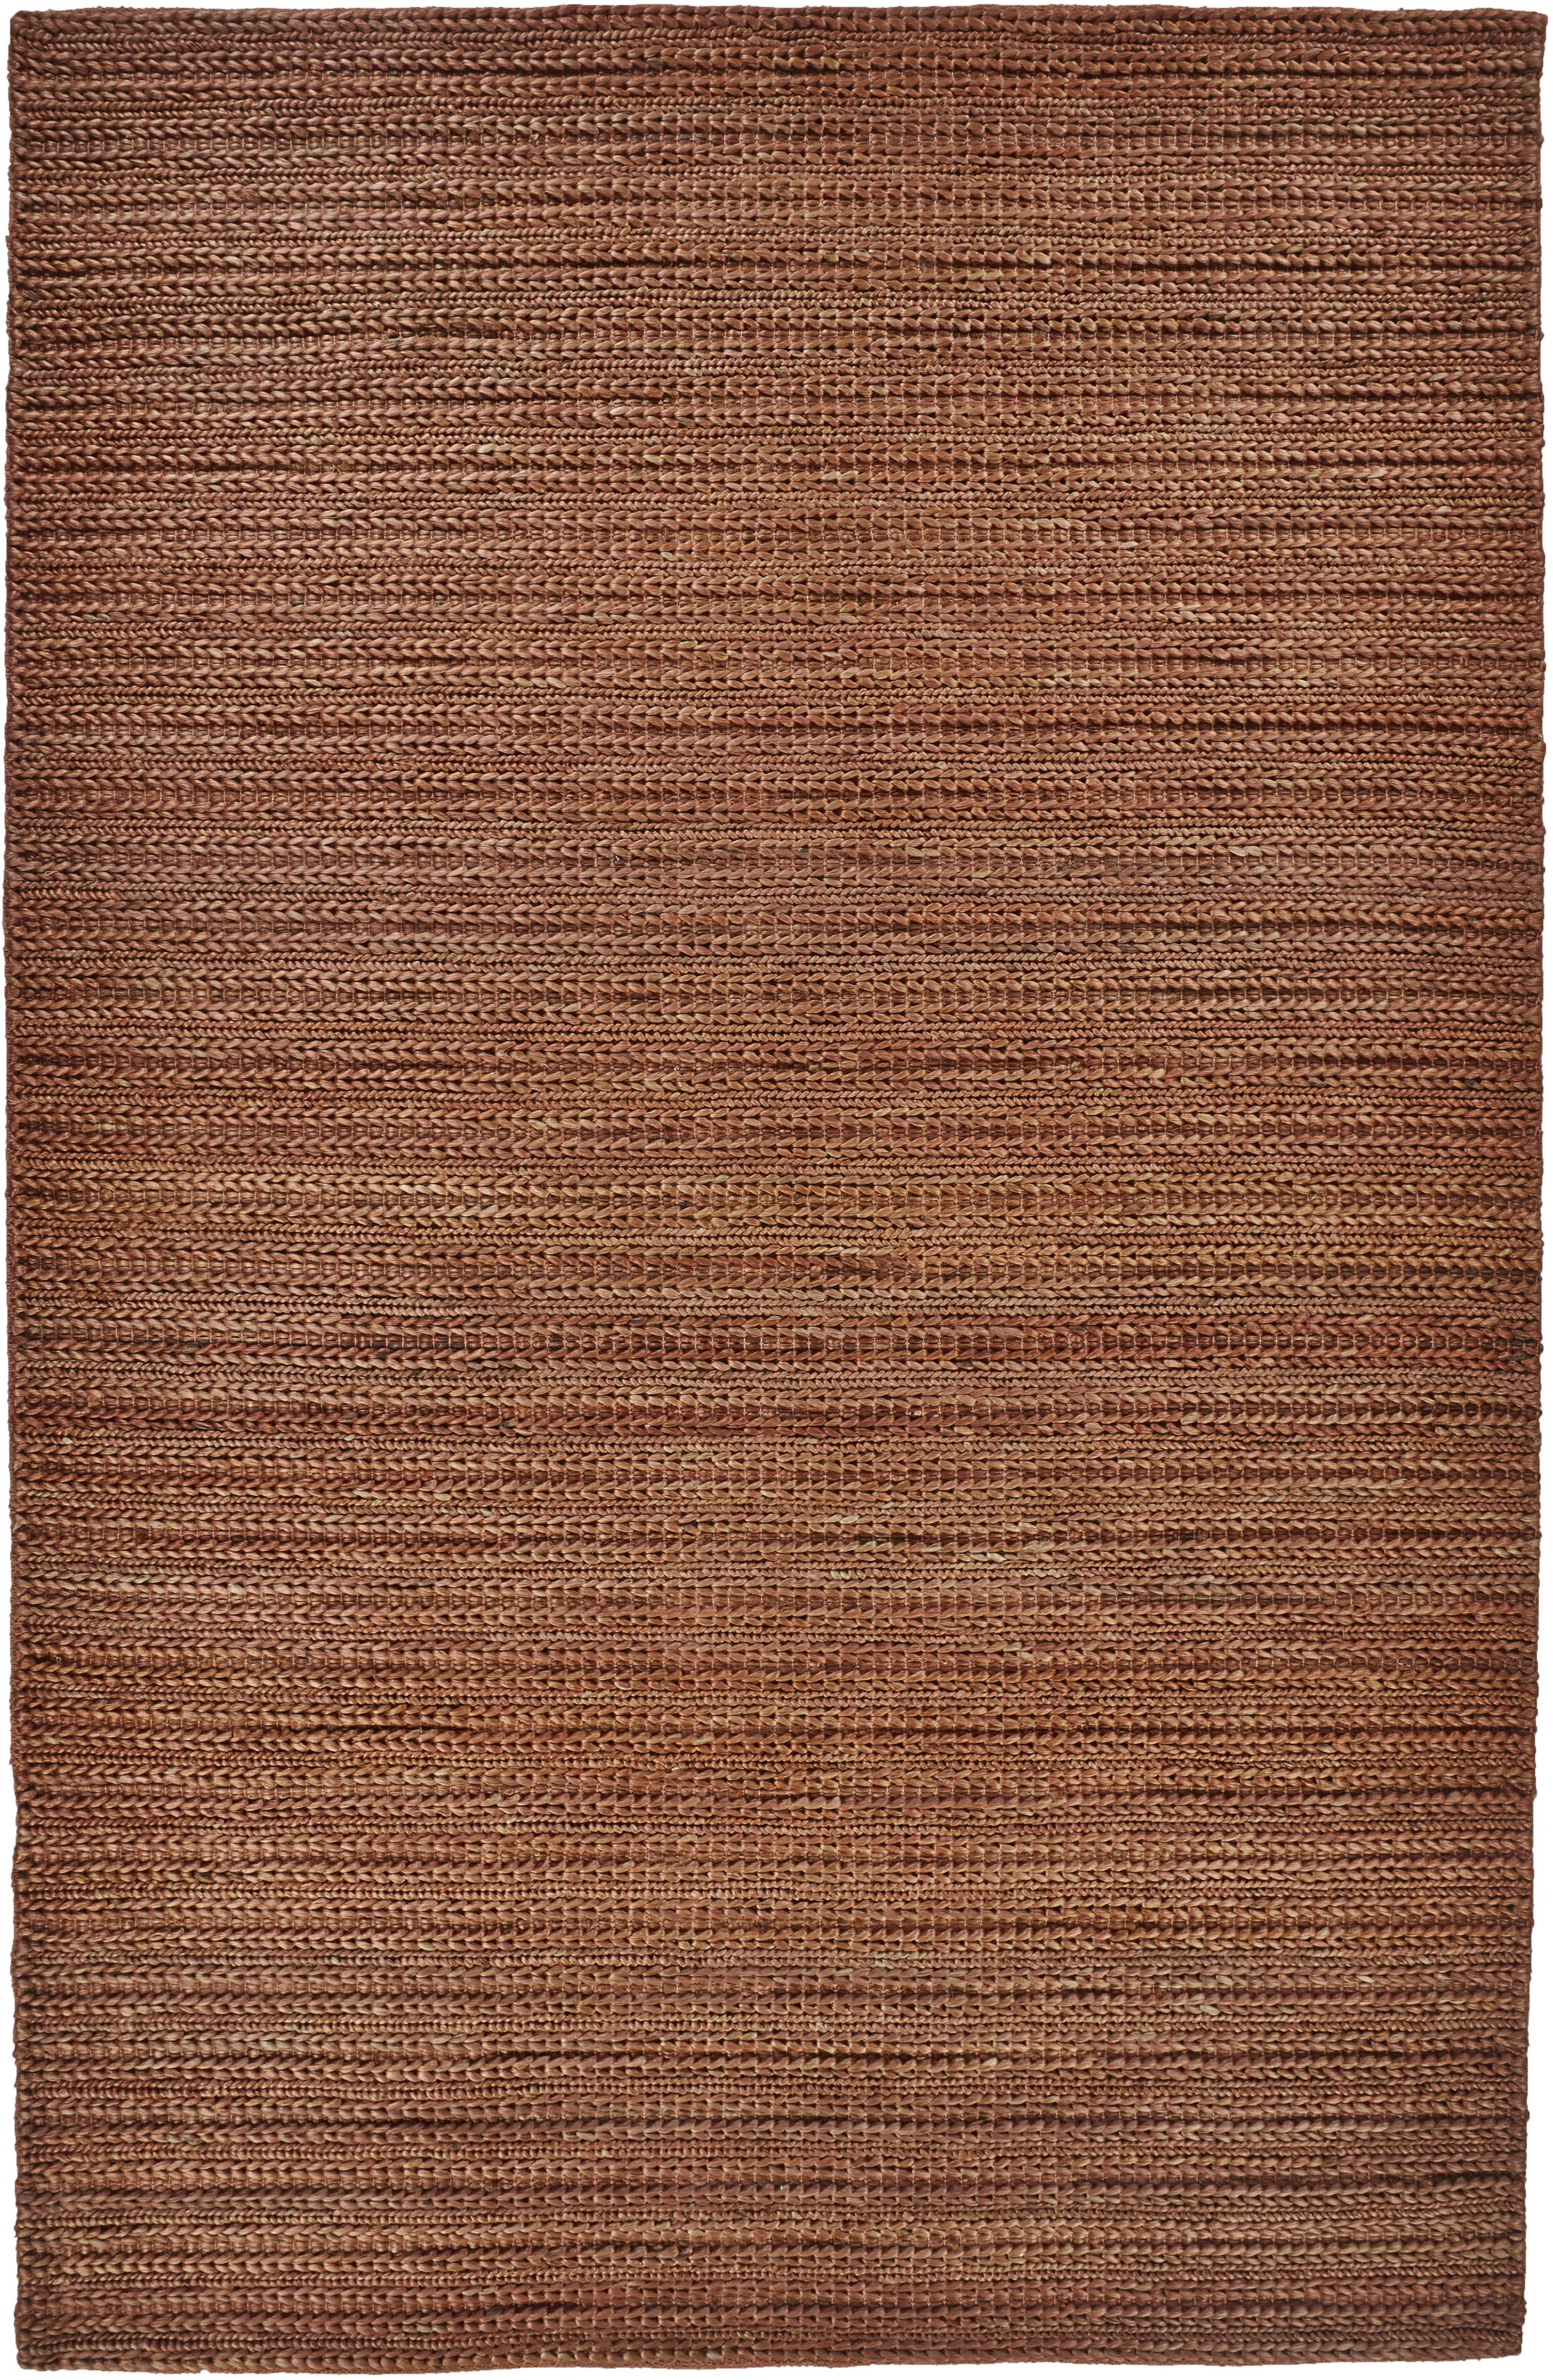 Riaria Hand-Woven Rust Area Rug Rug Size: Rectangle 8' x 11'